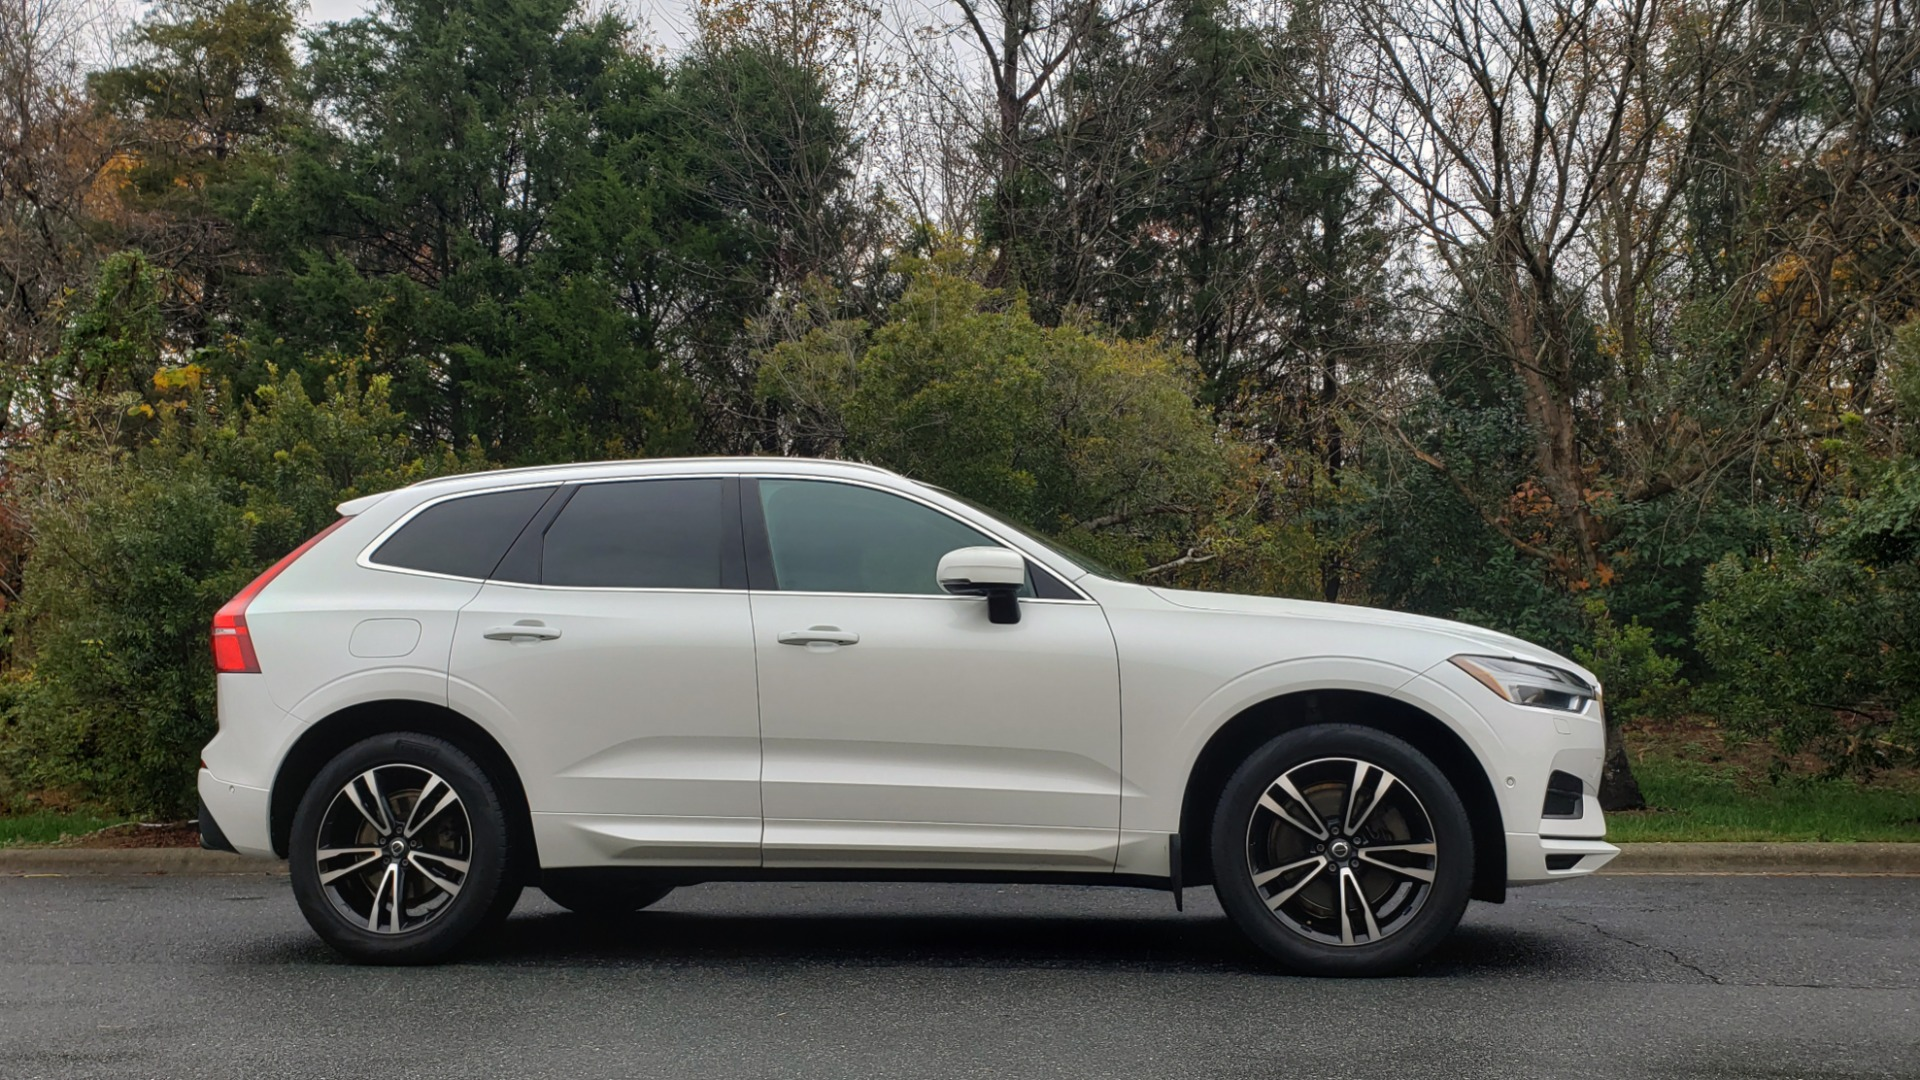 Used 2018 Volvo XC60 MOMENTUM AWD / NAV / SUNROOF / LKA / BLIS / PRK ASST for sale Sold at Formula Imports in Charlotte NC 28227 5